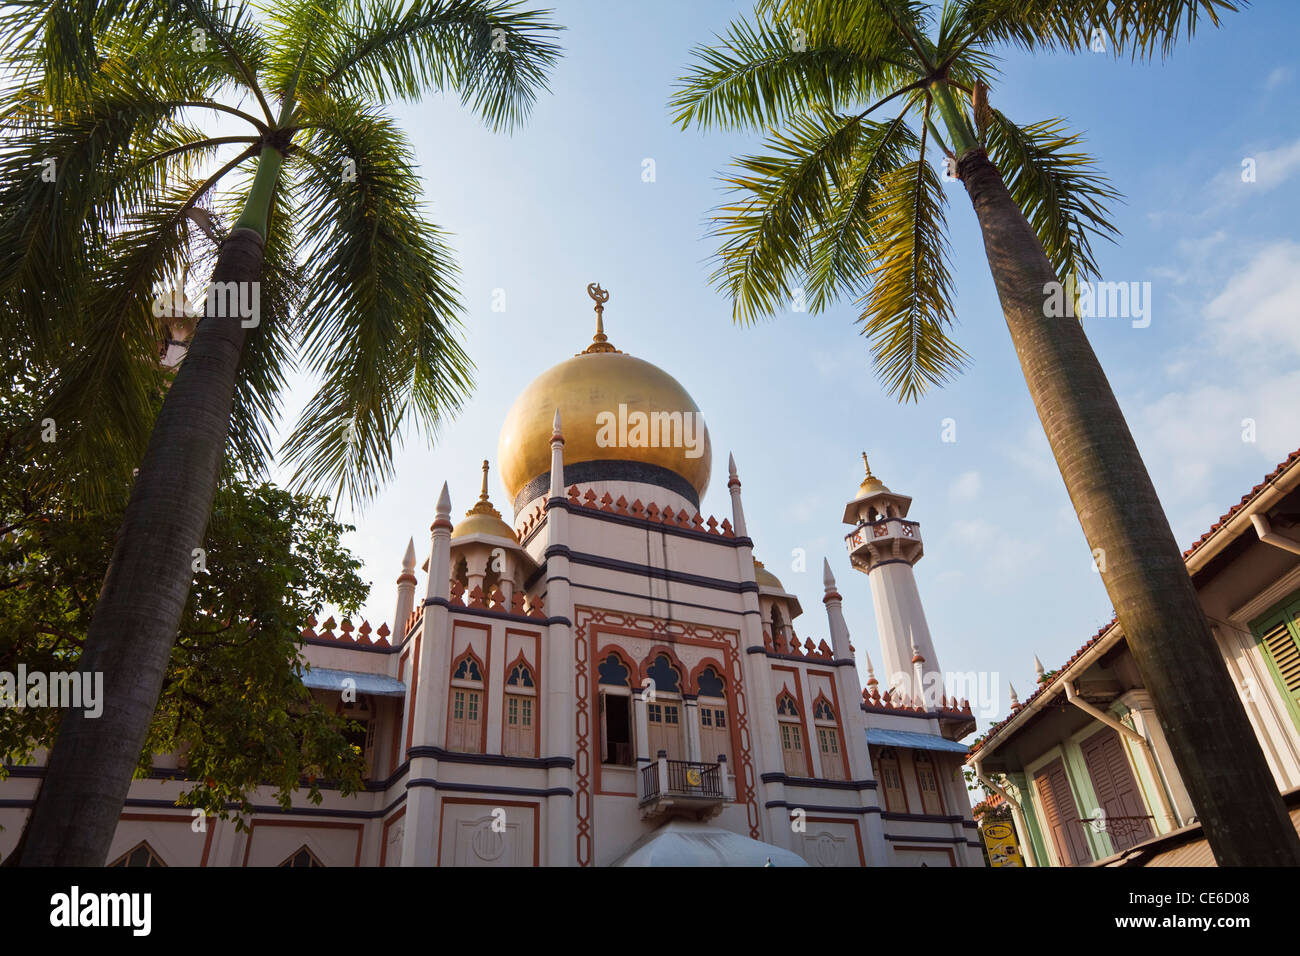 The Sultan Mosque in the Muslim quarter of Kampong Glam, Singapore - Stock Image